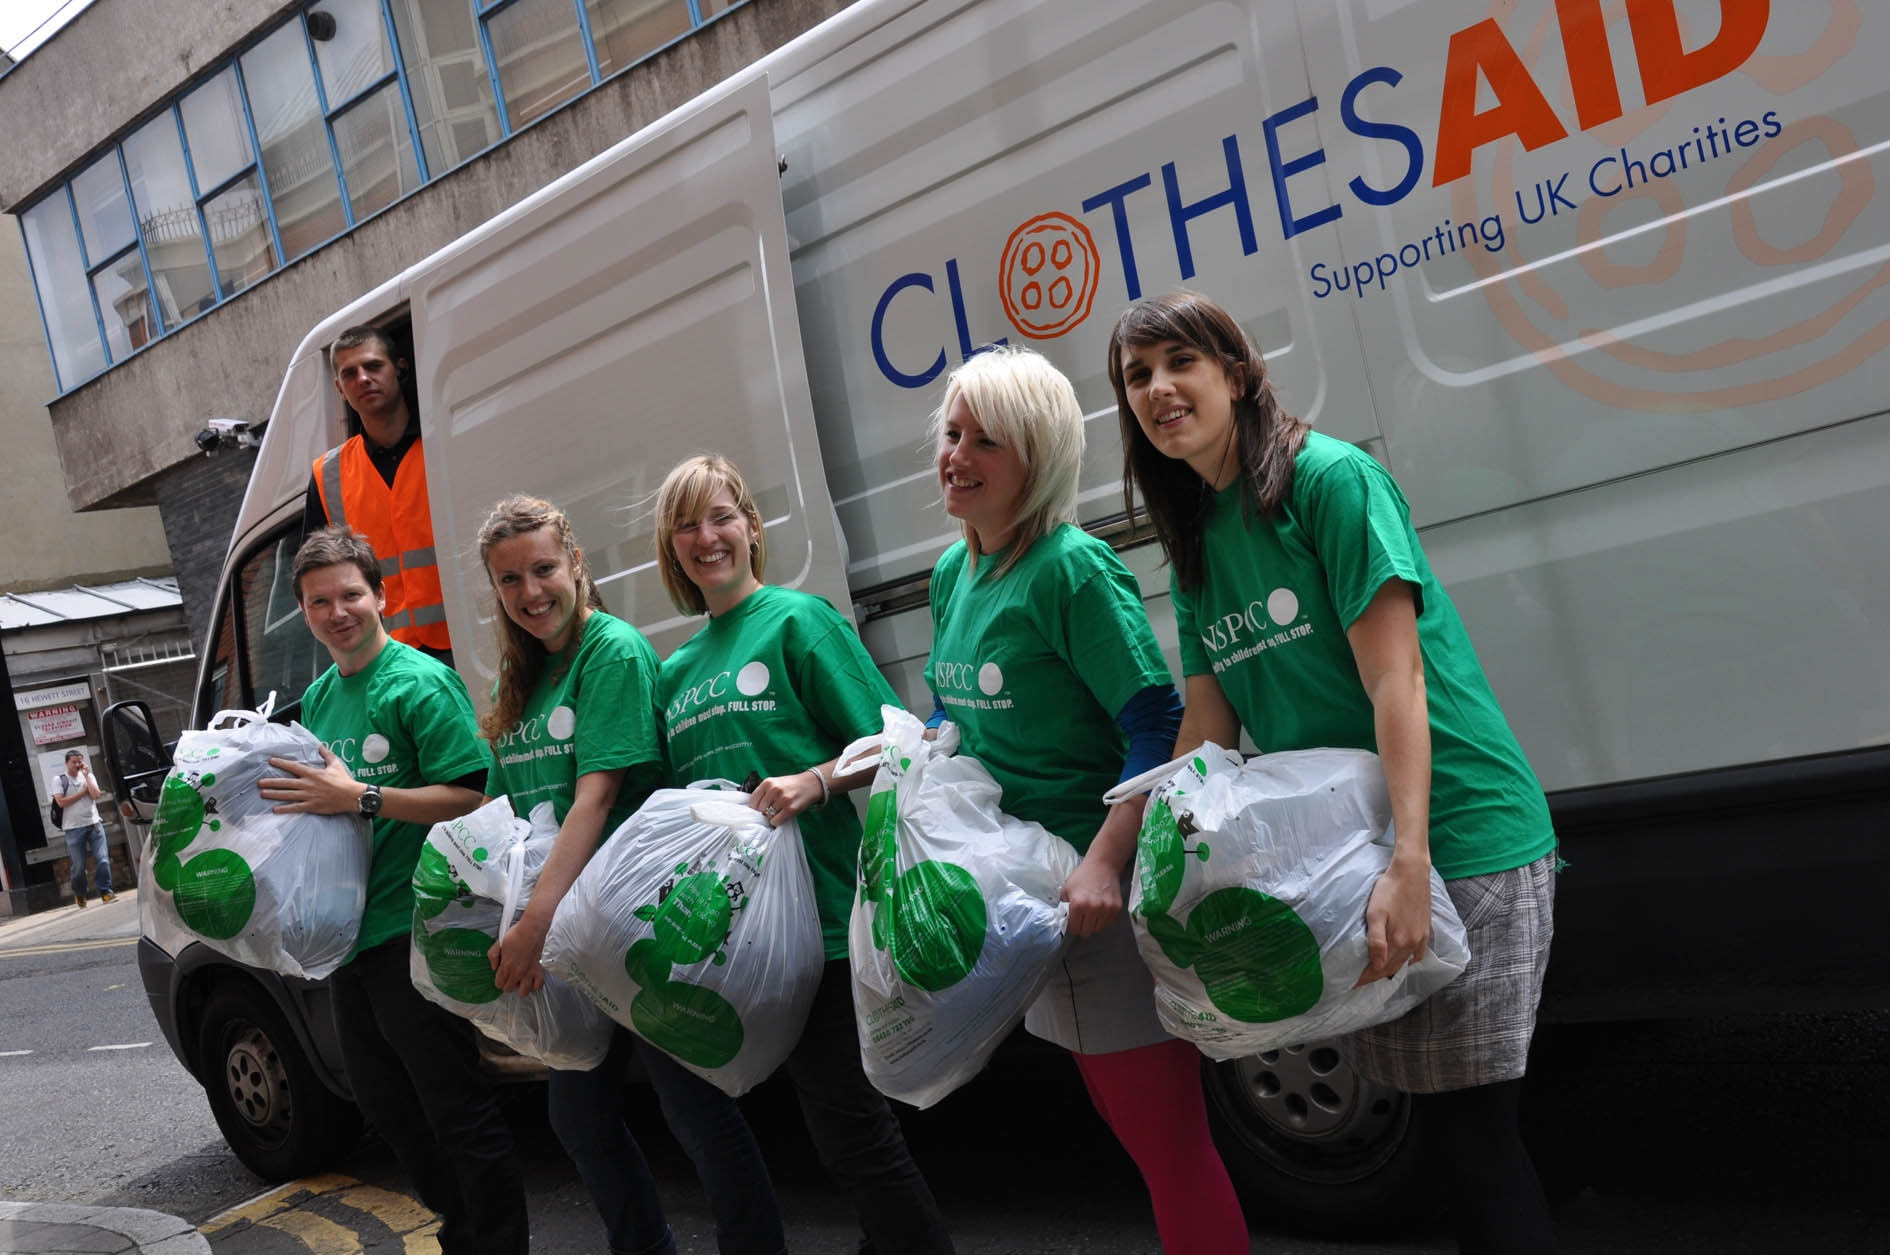 Collection for Clothes Aid by NSPCC